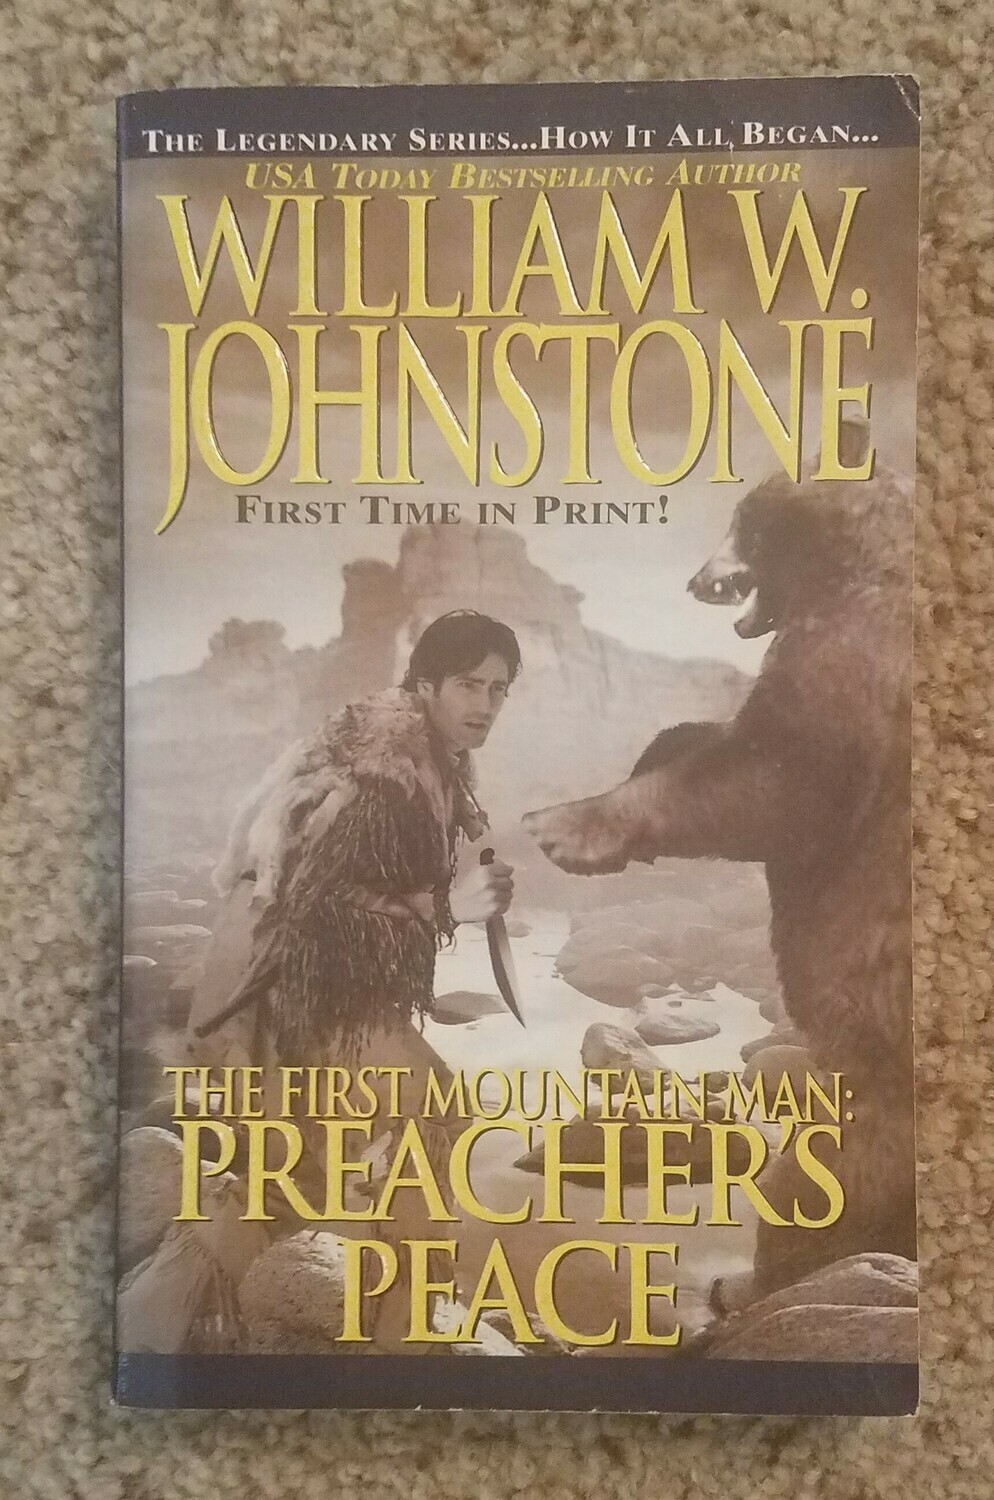 The Frist Mountain Man: Preacher's Peace by William W. Johnstone